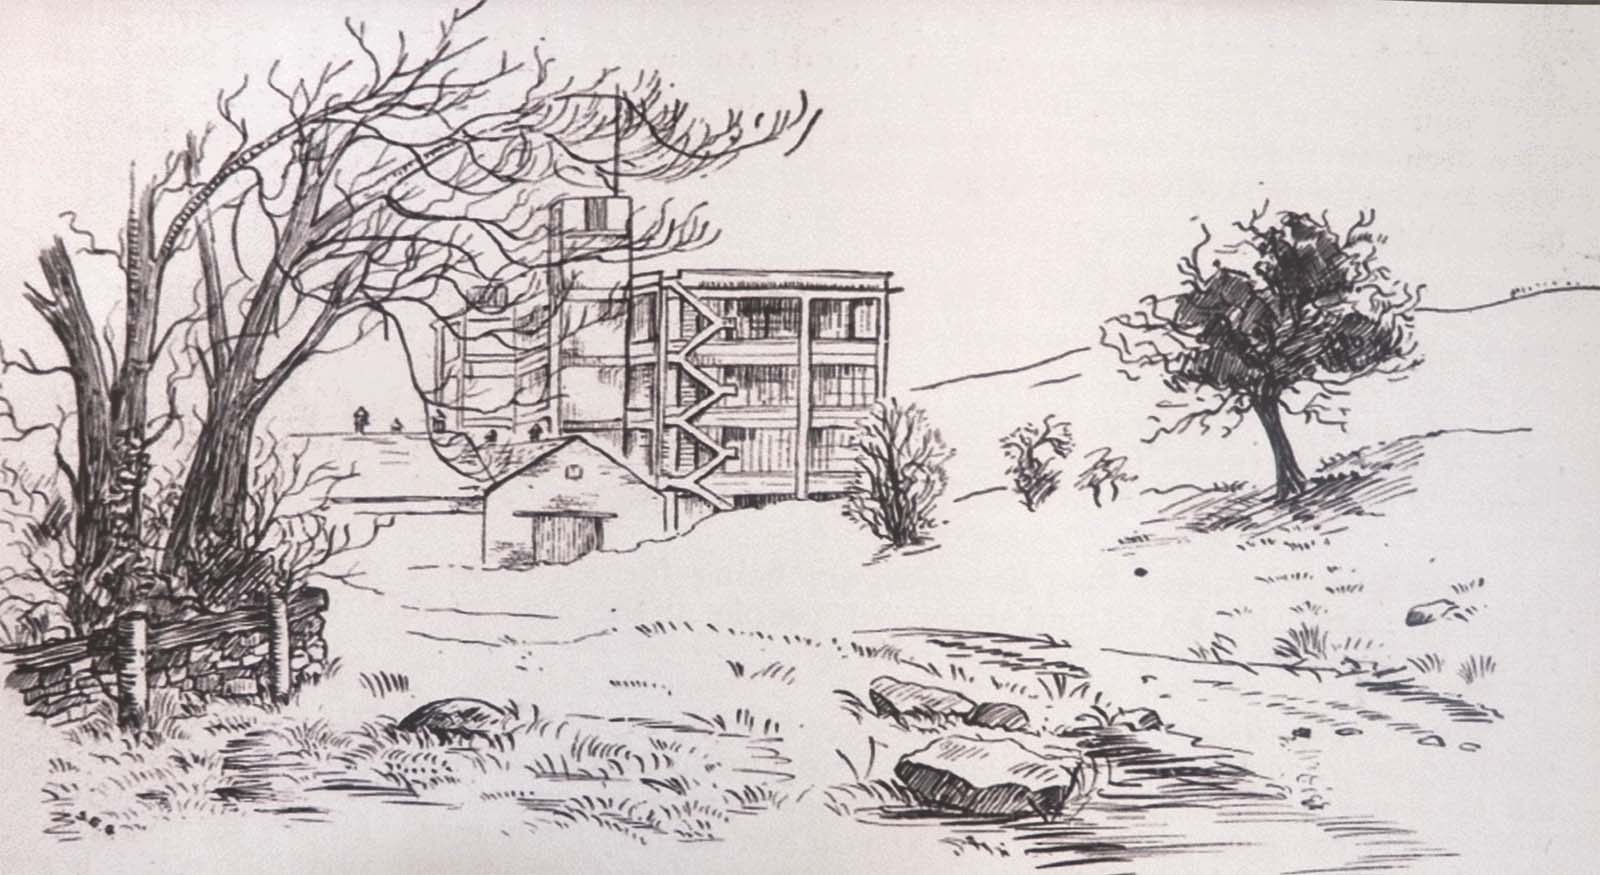 drawing of a factory building in a landscape